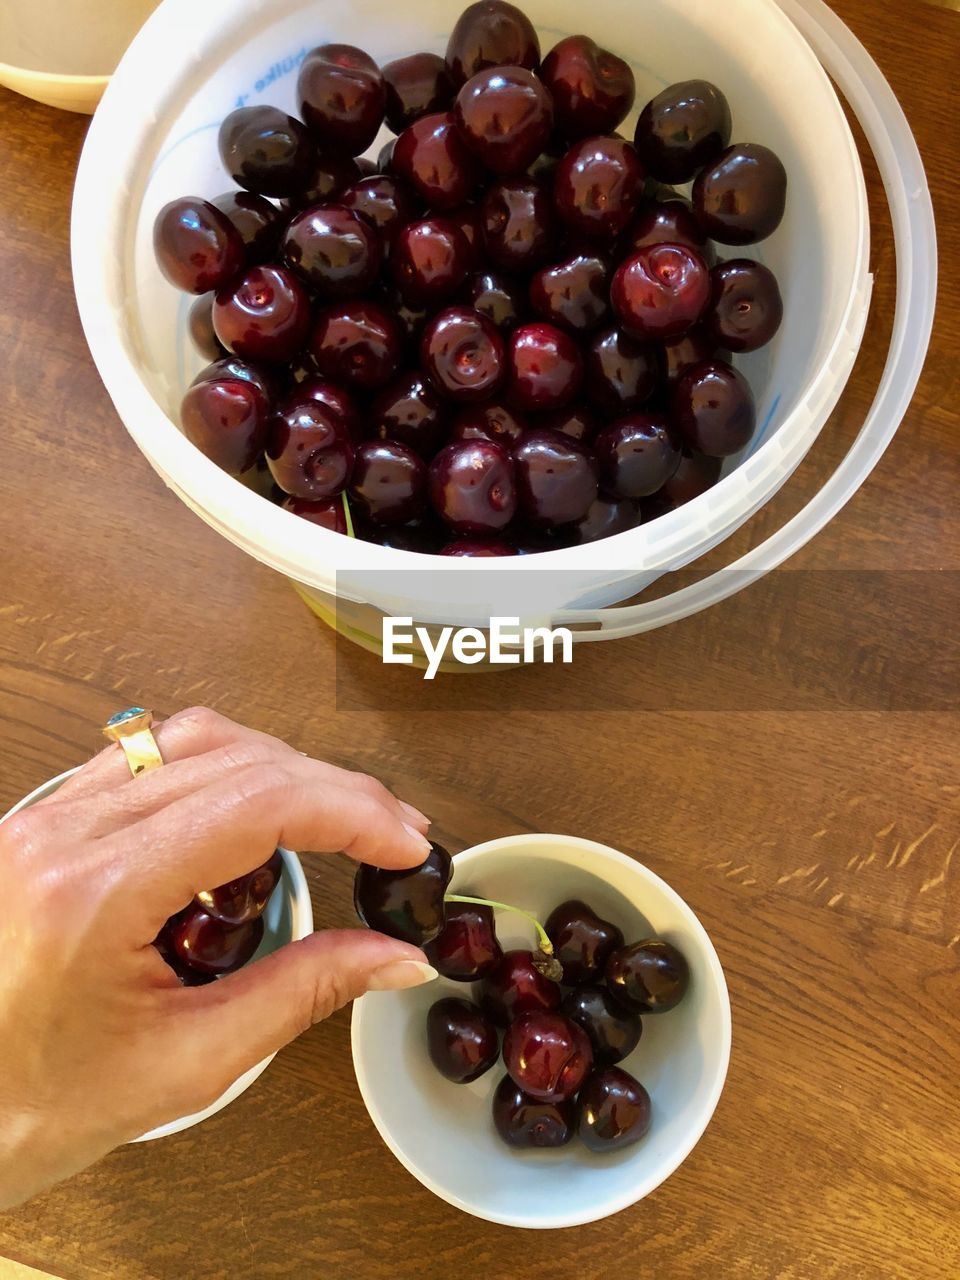 Kirschen sortieren 2 Food And Drink Food Fruit Freshness Human Hand Human Body Part One Person Healthy Eating Table Indoors  Wellbeing Sweet Food Hand Real People Lifestyles Sweet Cherry